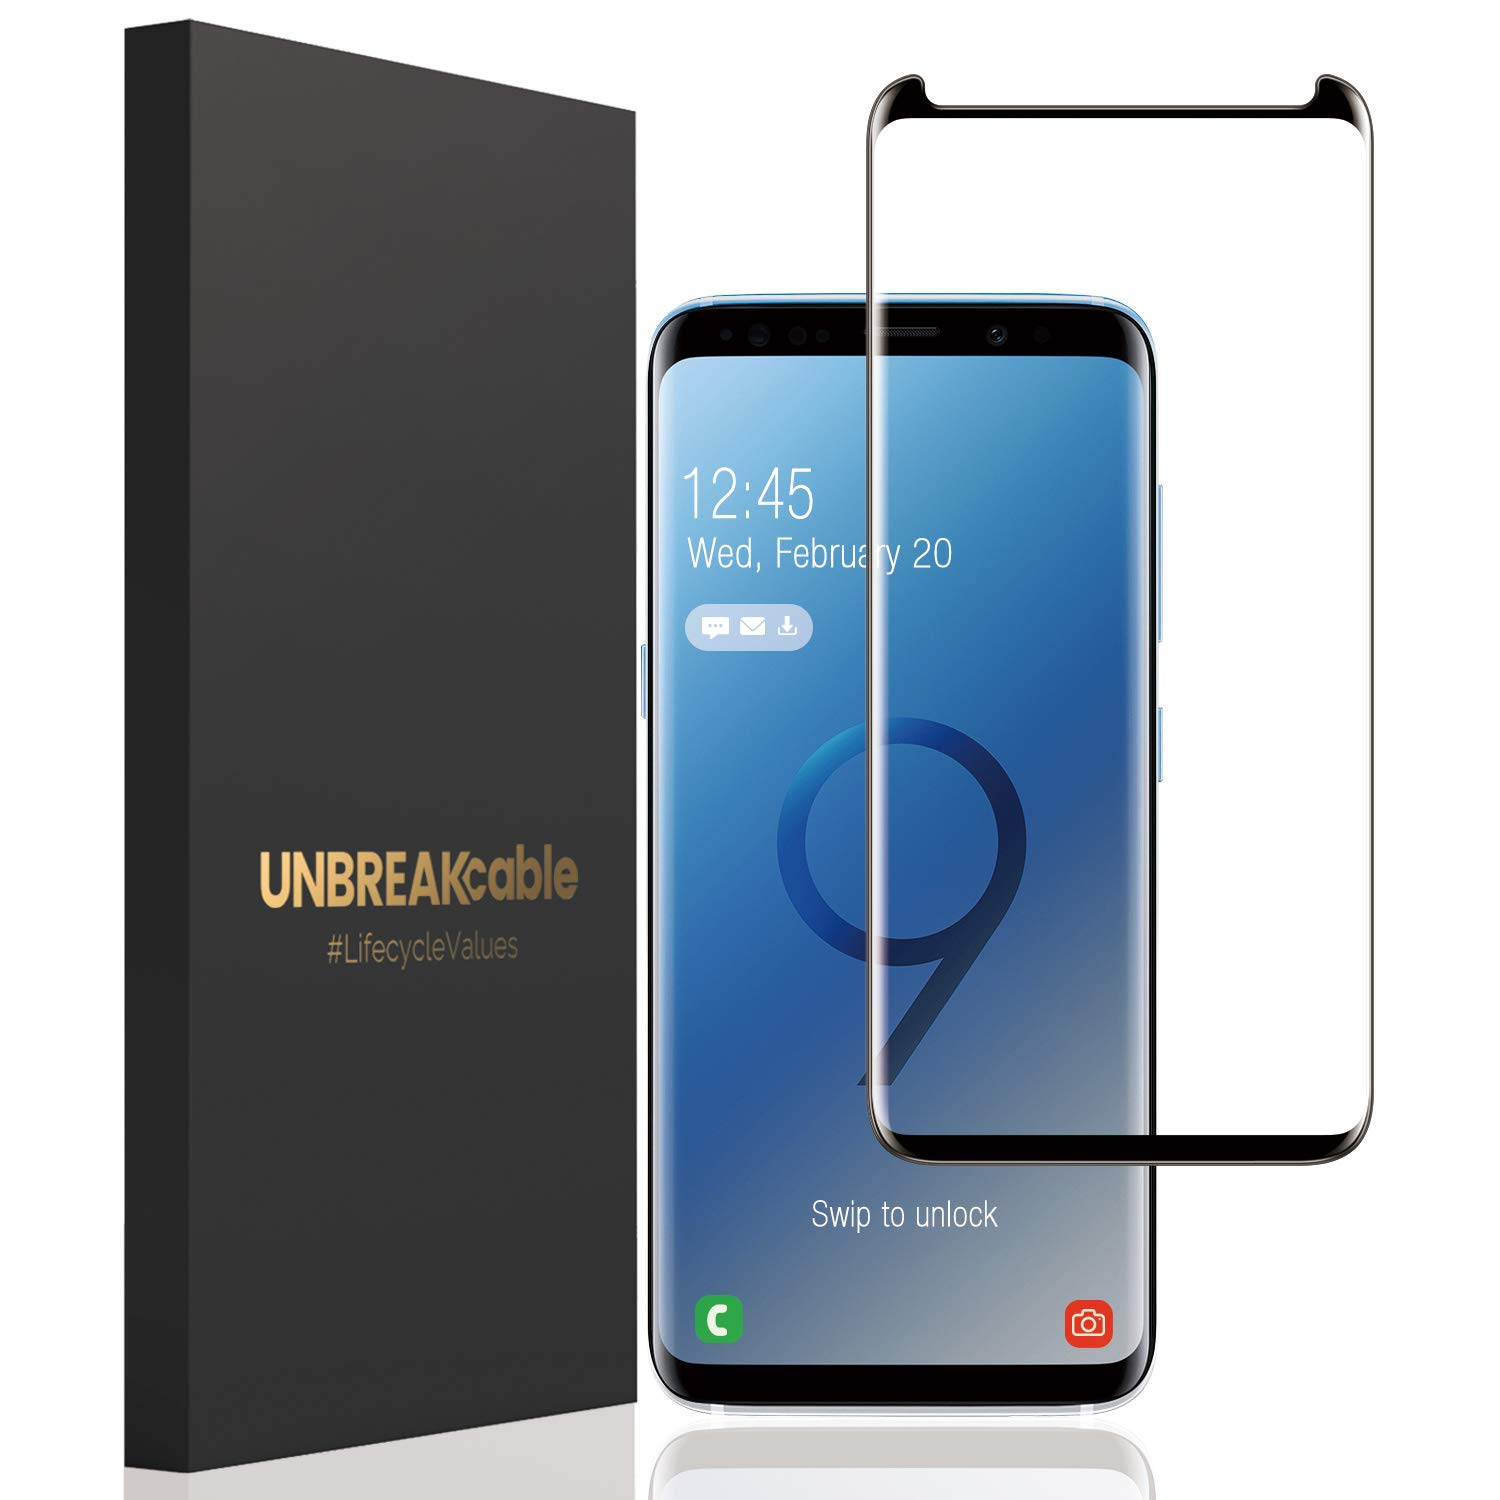 """UNBREAKcable Samsung Galaxy S9 Plus Screen Protector, 3D Curved,  Bubble-free, HD Clear, Anti-scratch, Case Friendly, 9H Hardness Tempered  Glass Screen Protector for Samsung Galaxy S9 Plus 6.2""""(Black) - Buy Online  in India. 